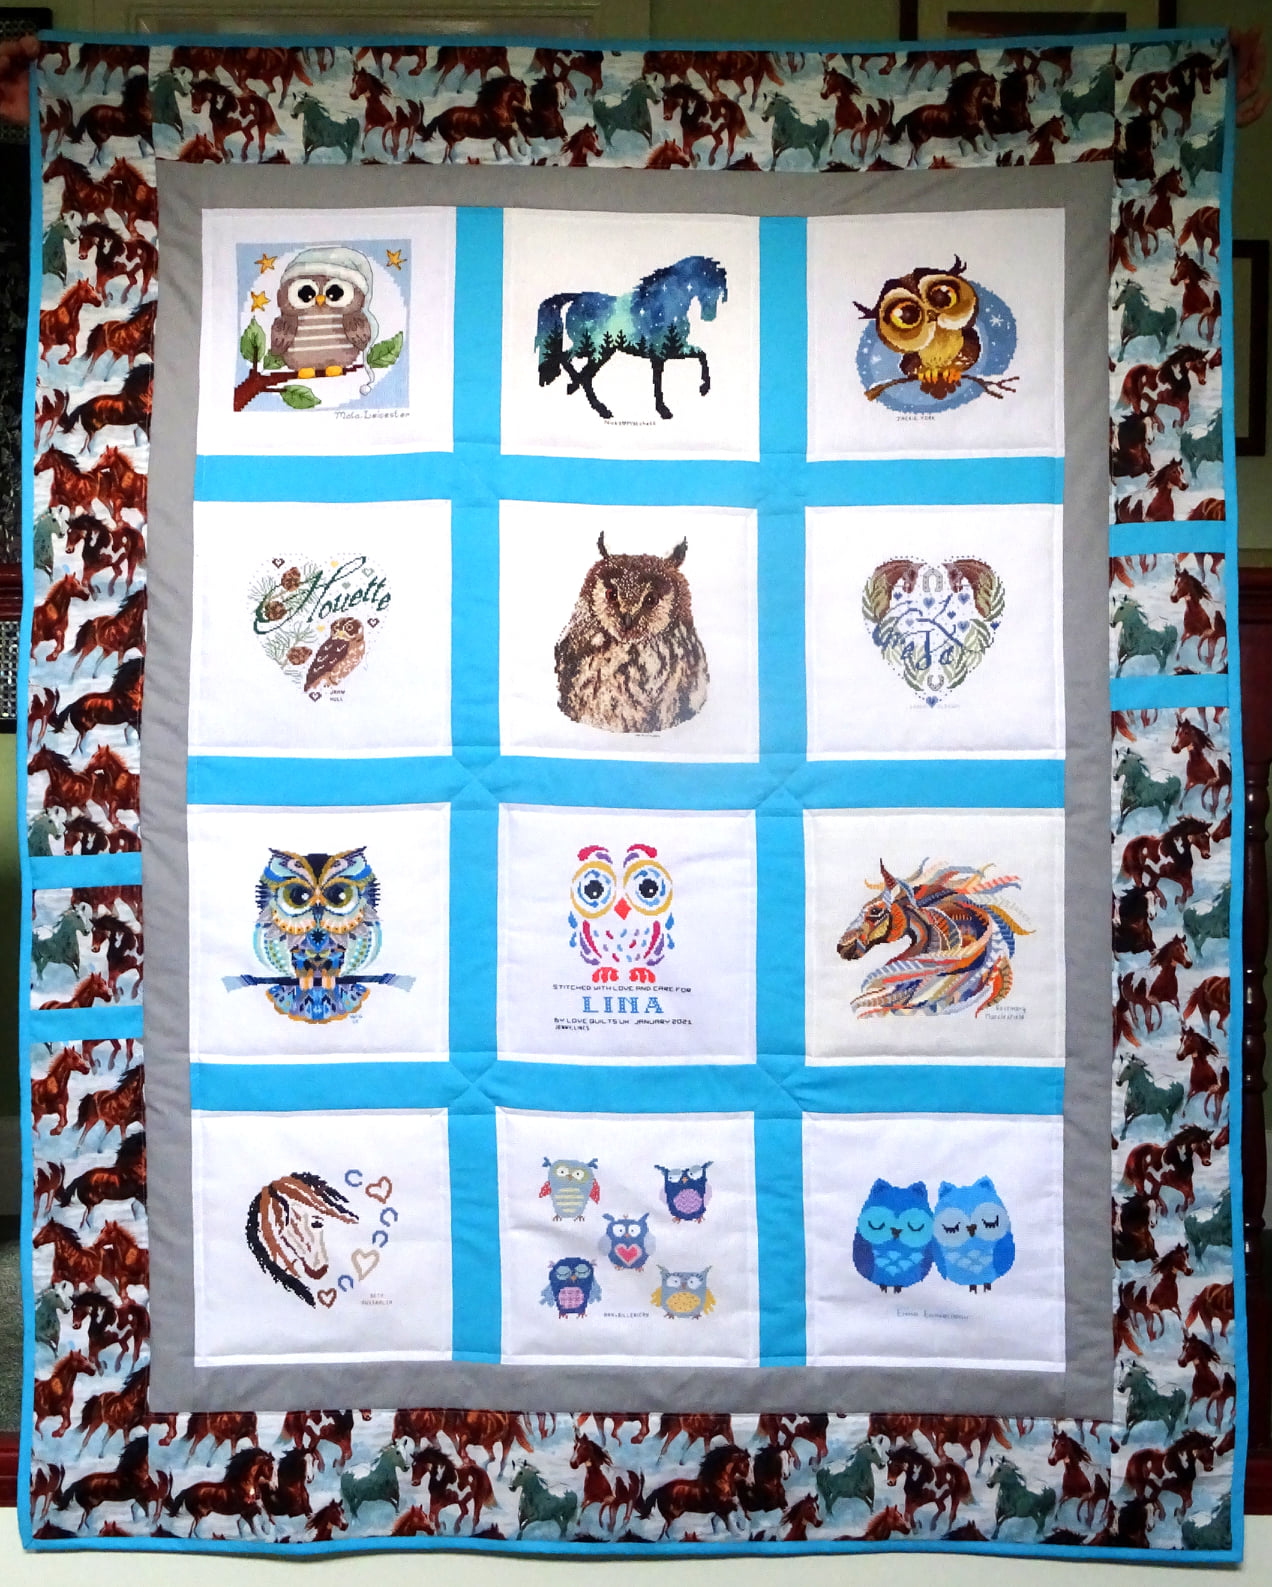 Photo of Lina S's quilt